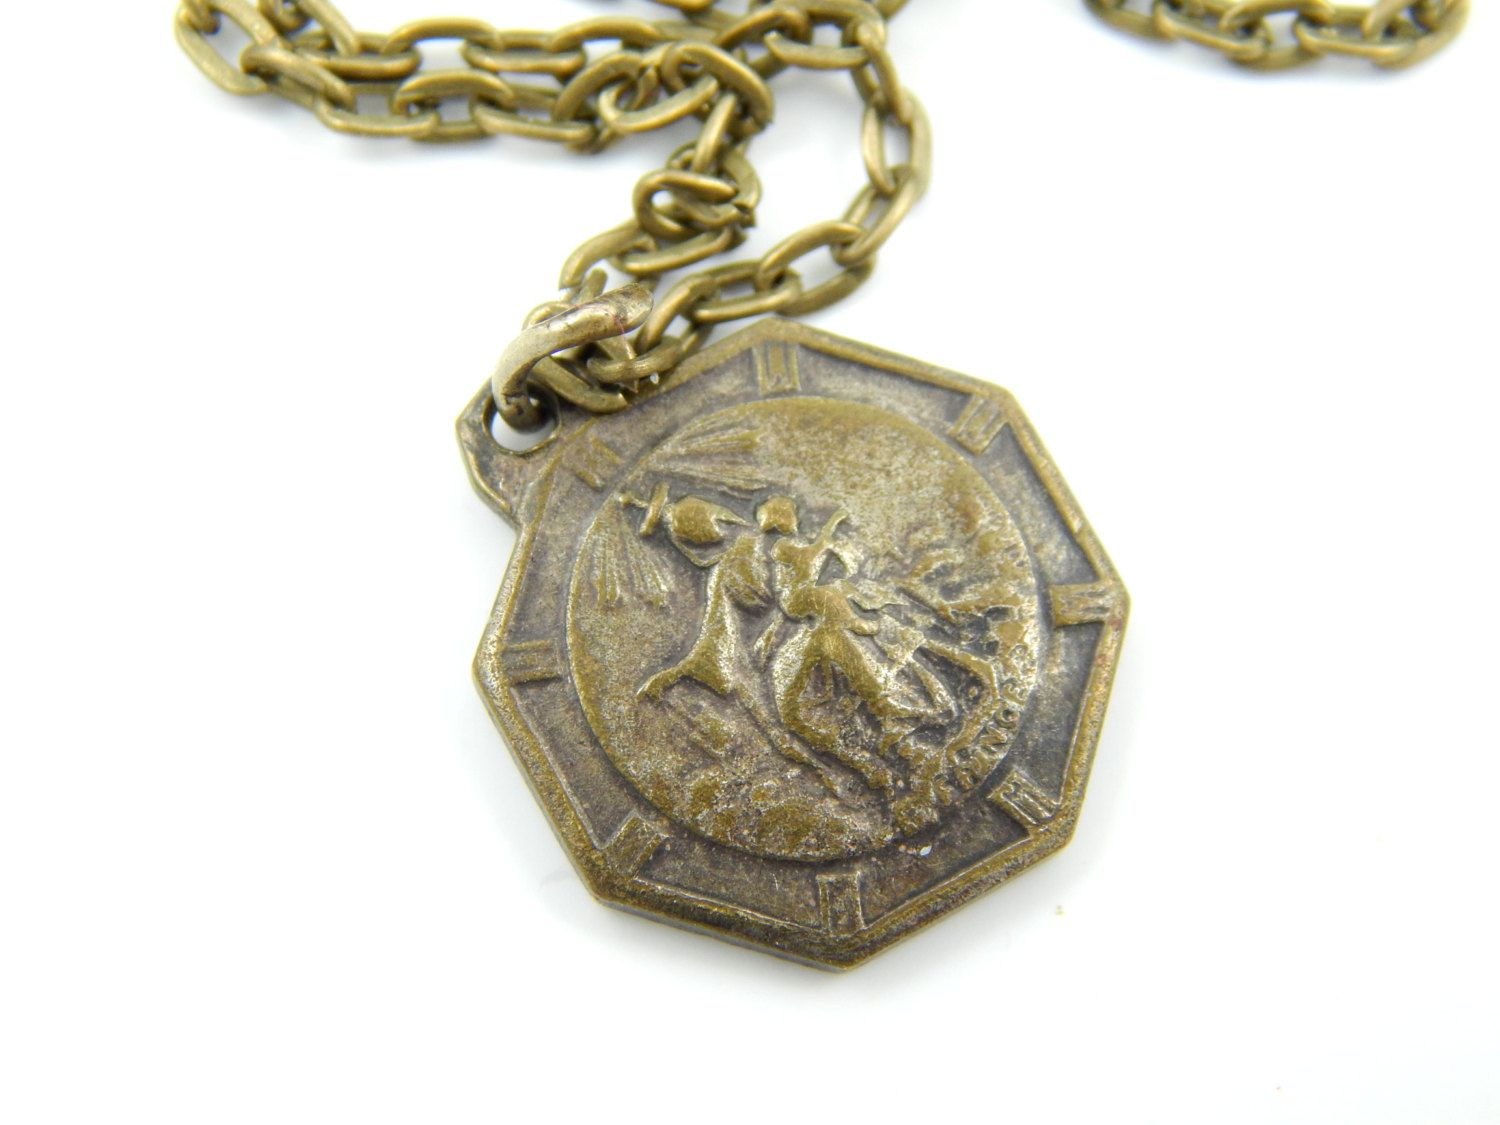 Our Lady of Mount Carmel Necklace - Vintage Sacred Heart of Jesus Catholic Medal - Virgin Mary Religious Charm Handmade Jewelry - U16 by LuxMeaChristus on Etsy